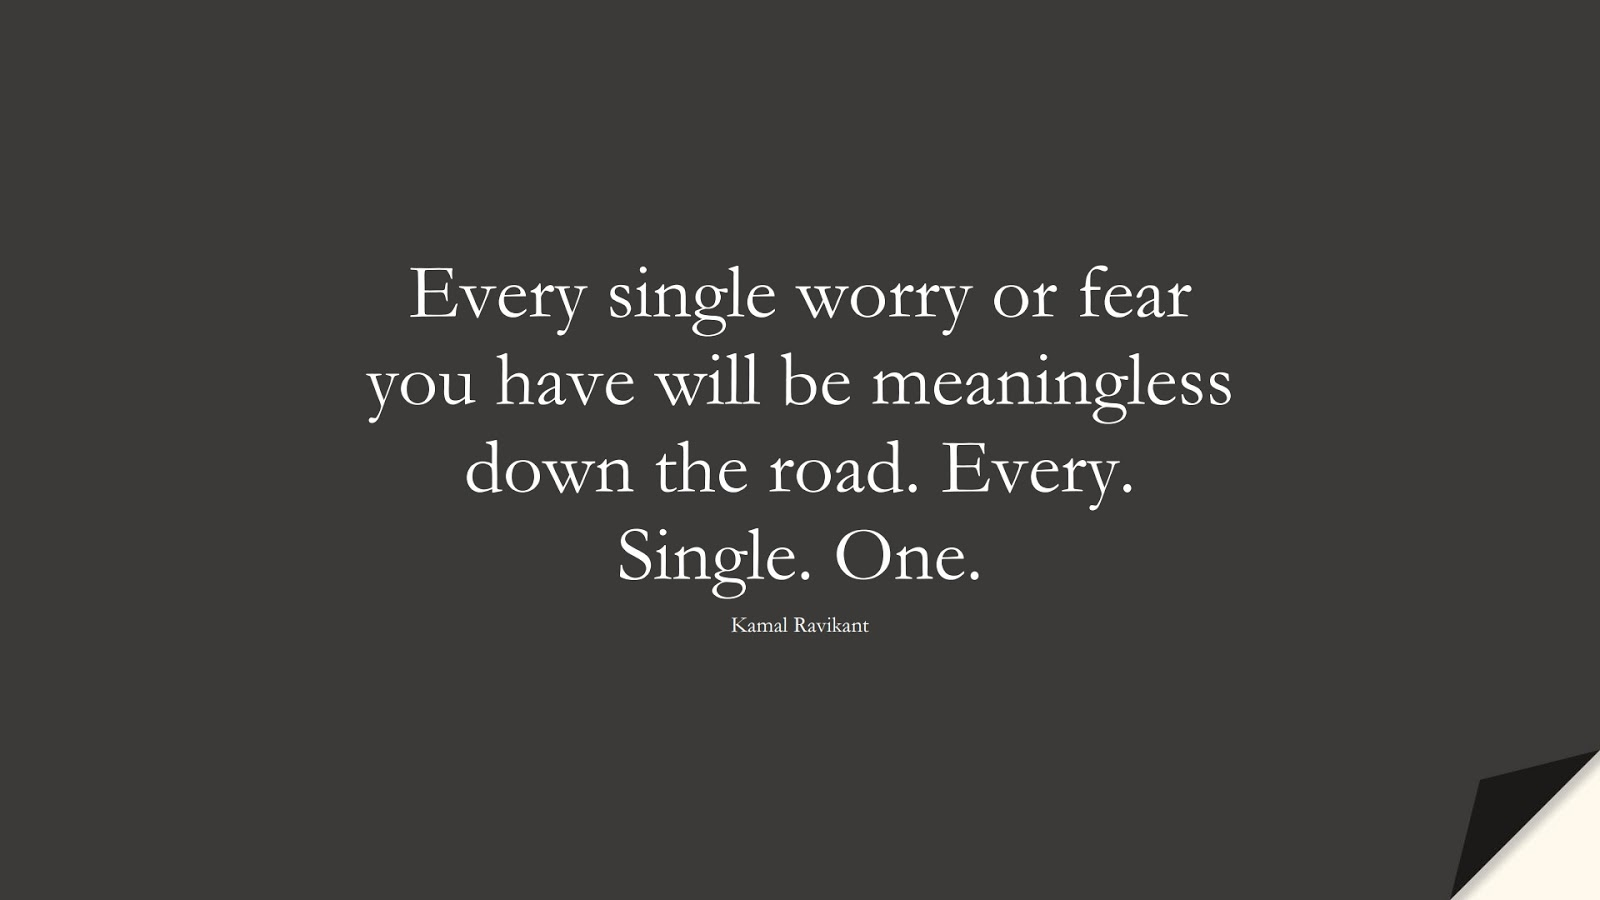 Every single worry or fear you have will be meaningless down the road. Every. Single. One. (Kamal Ravikant);  #FearQuotes